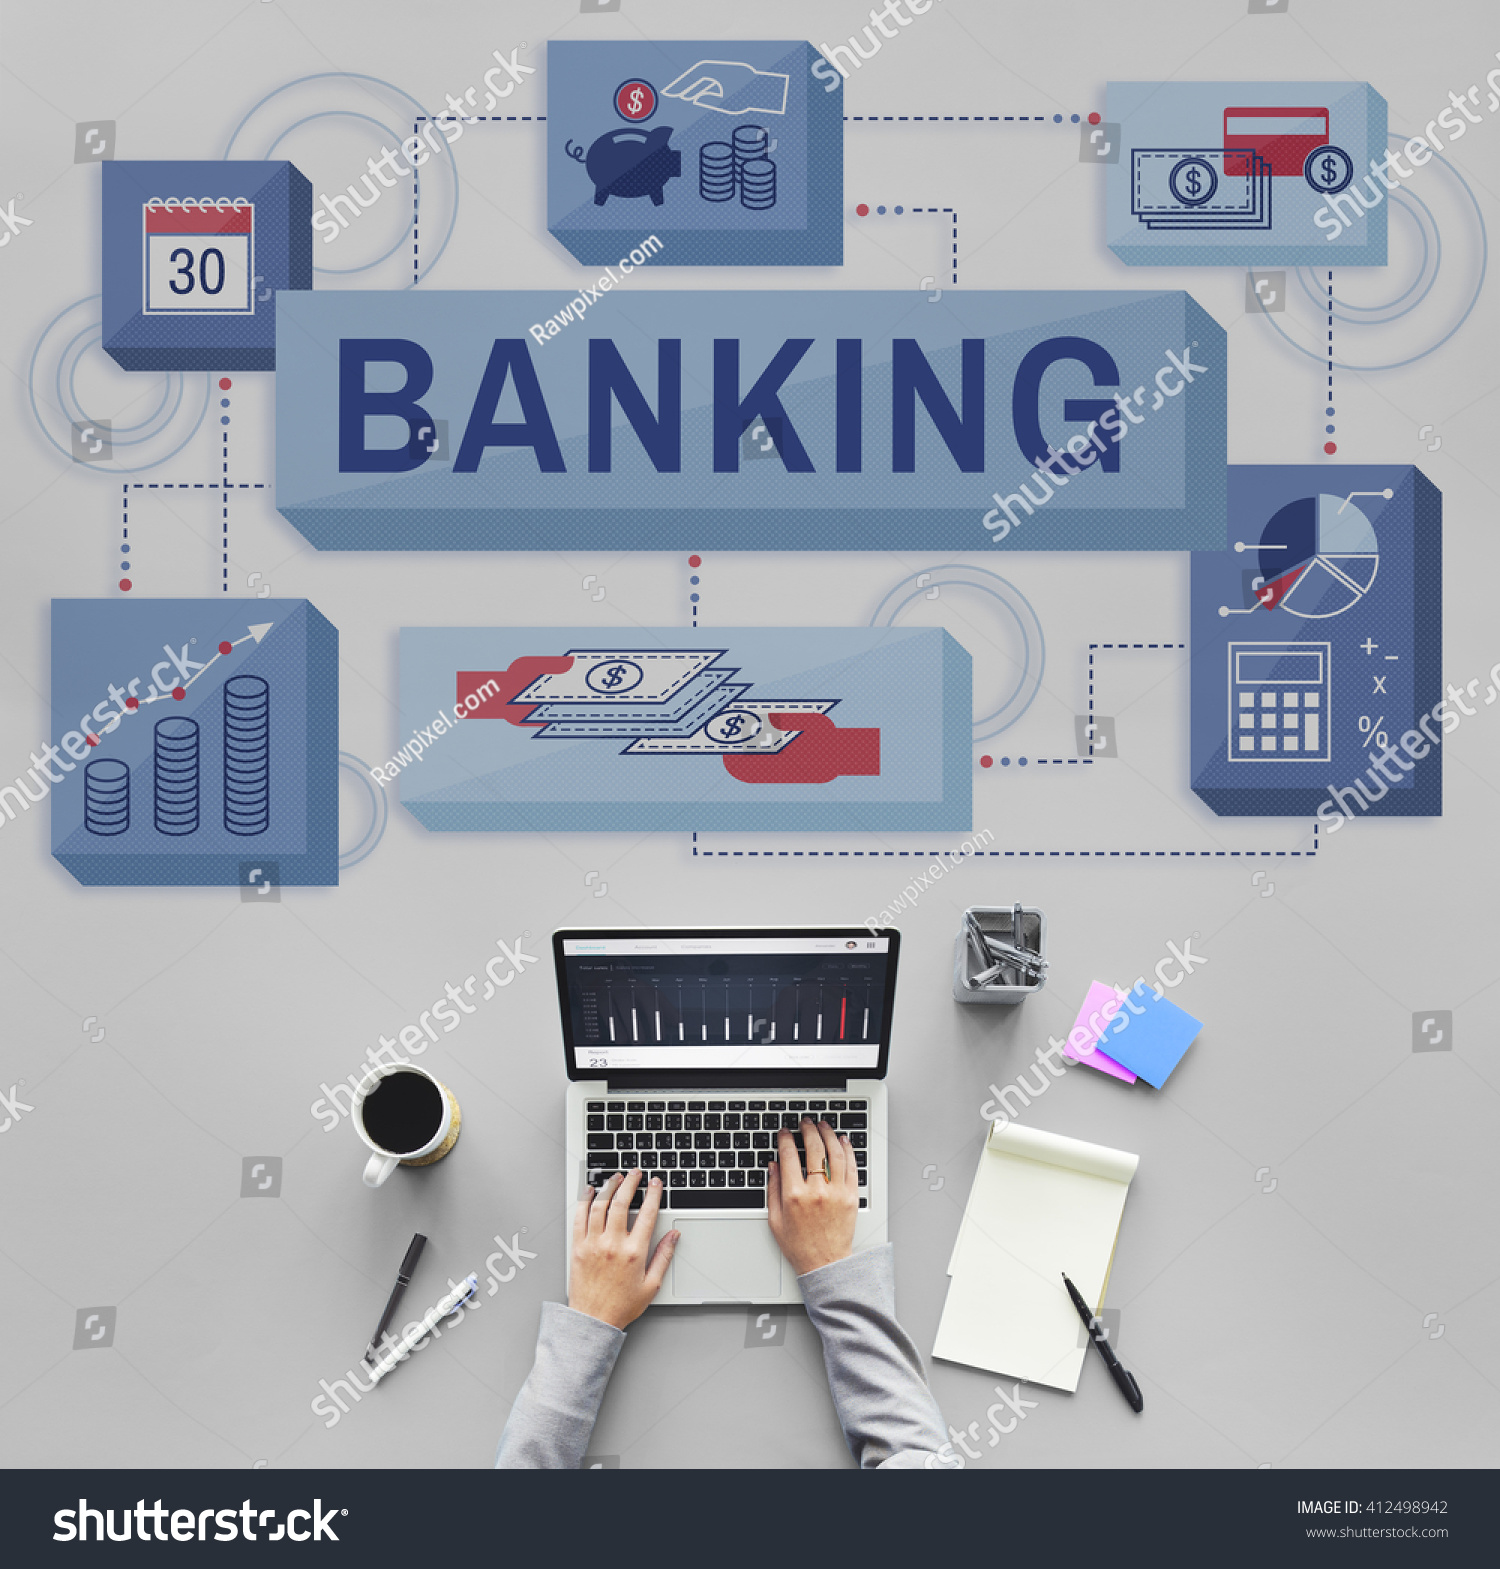 money and banking management Suntrust online cash manager makes business banking easy with cash management, fraud protection and access to information online and via a mobile device.